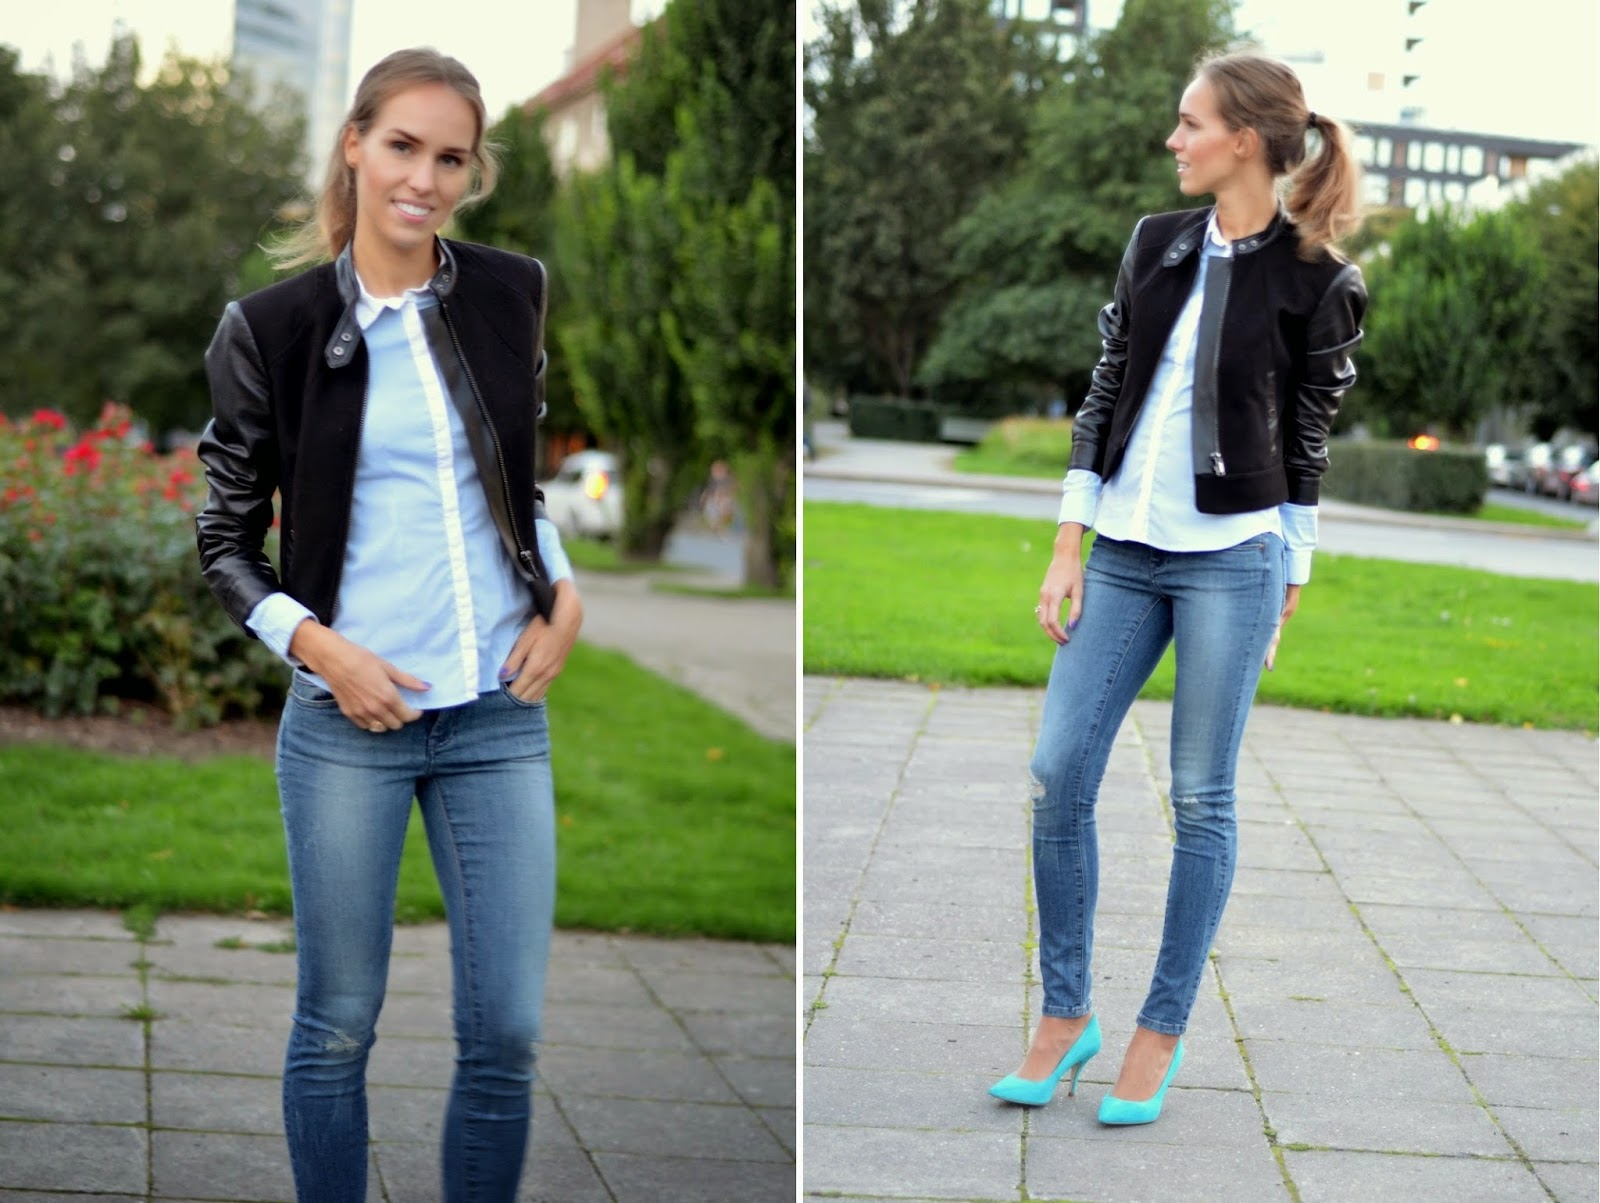 hm-blue-button-down-shirt-leather-sleeve-jacket-river-island-court-shoes